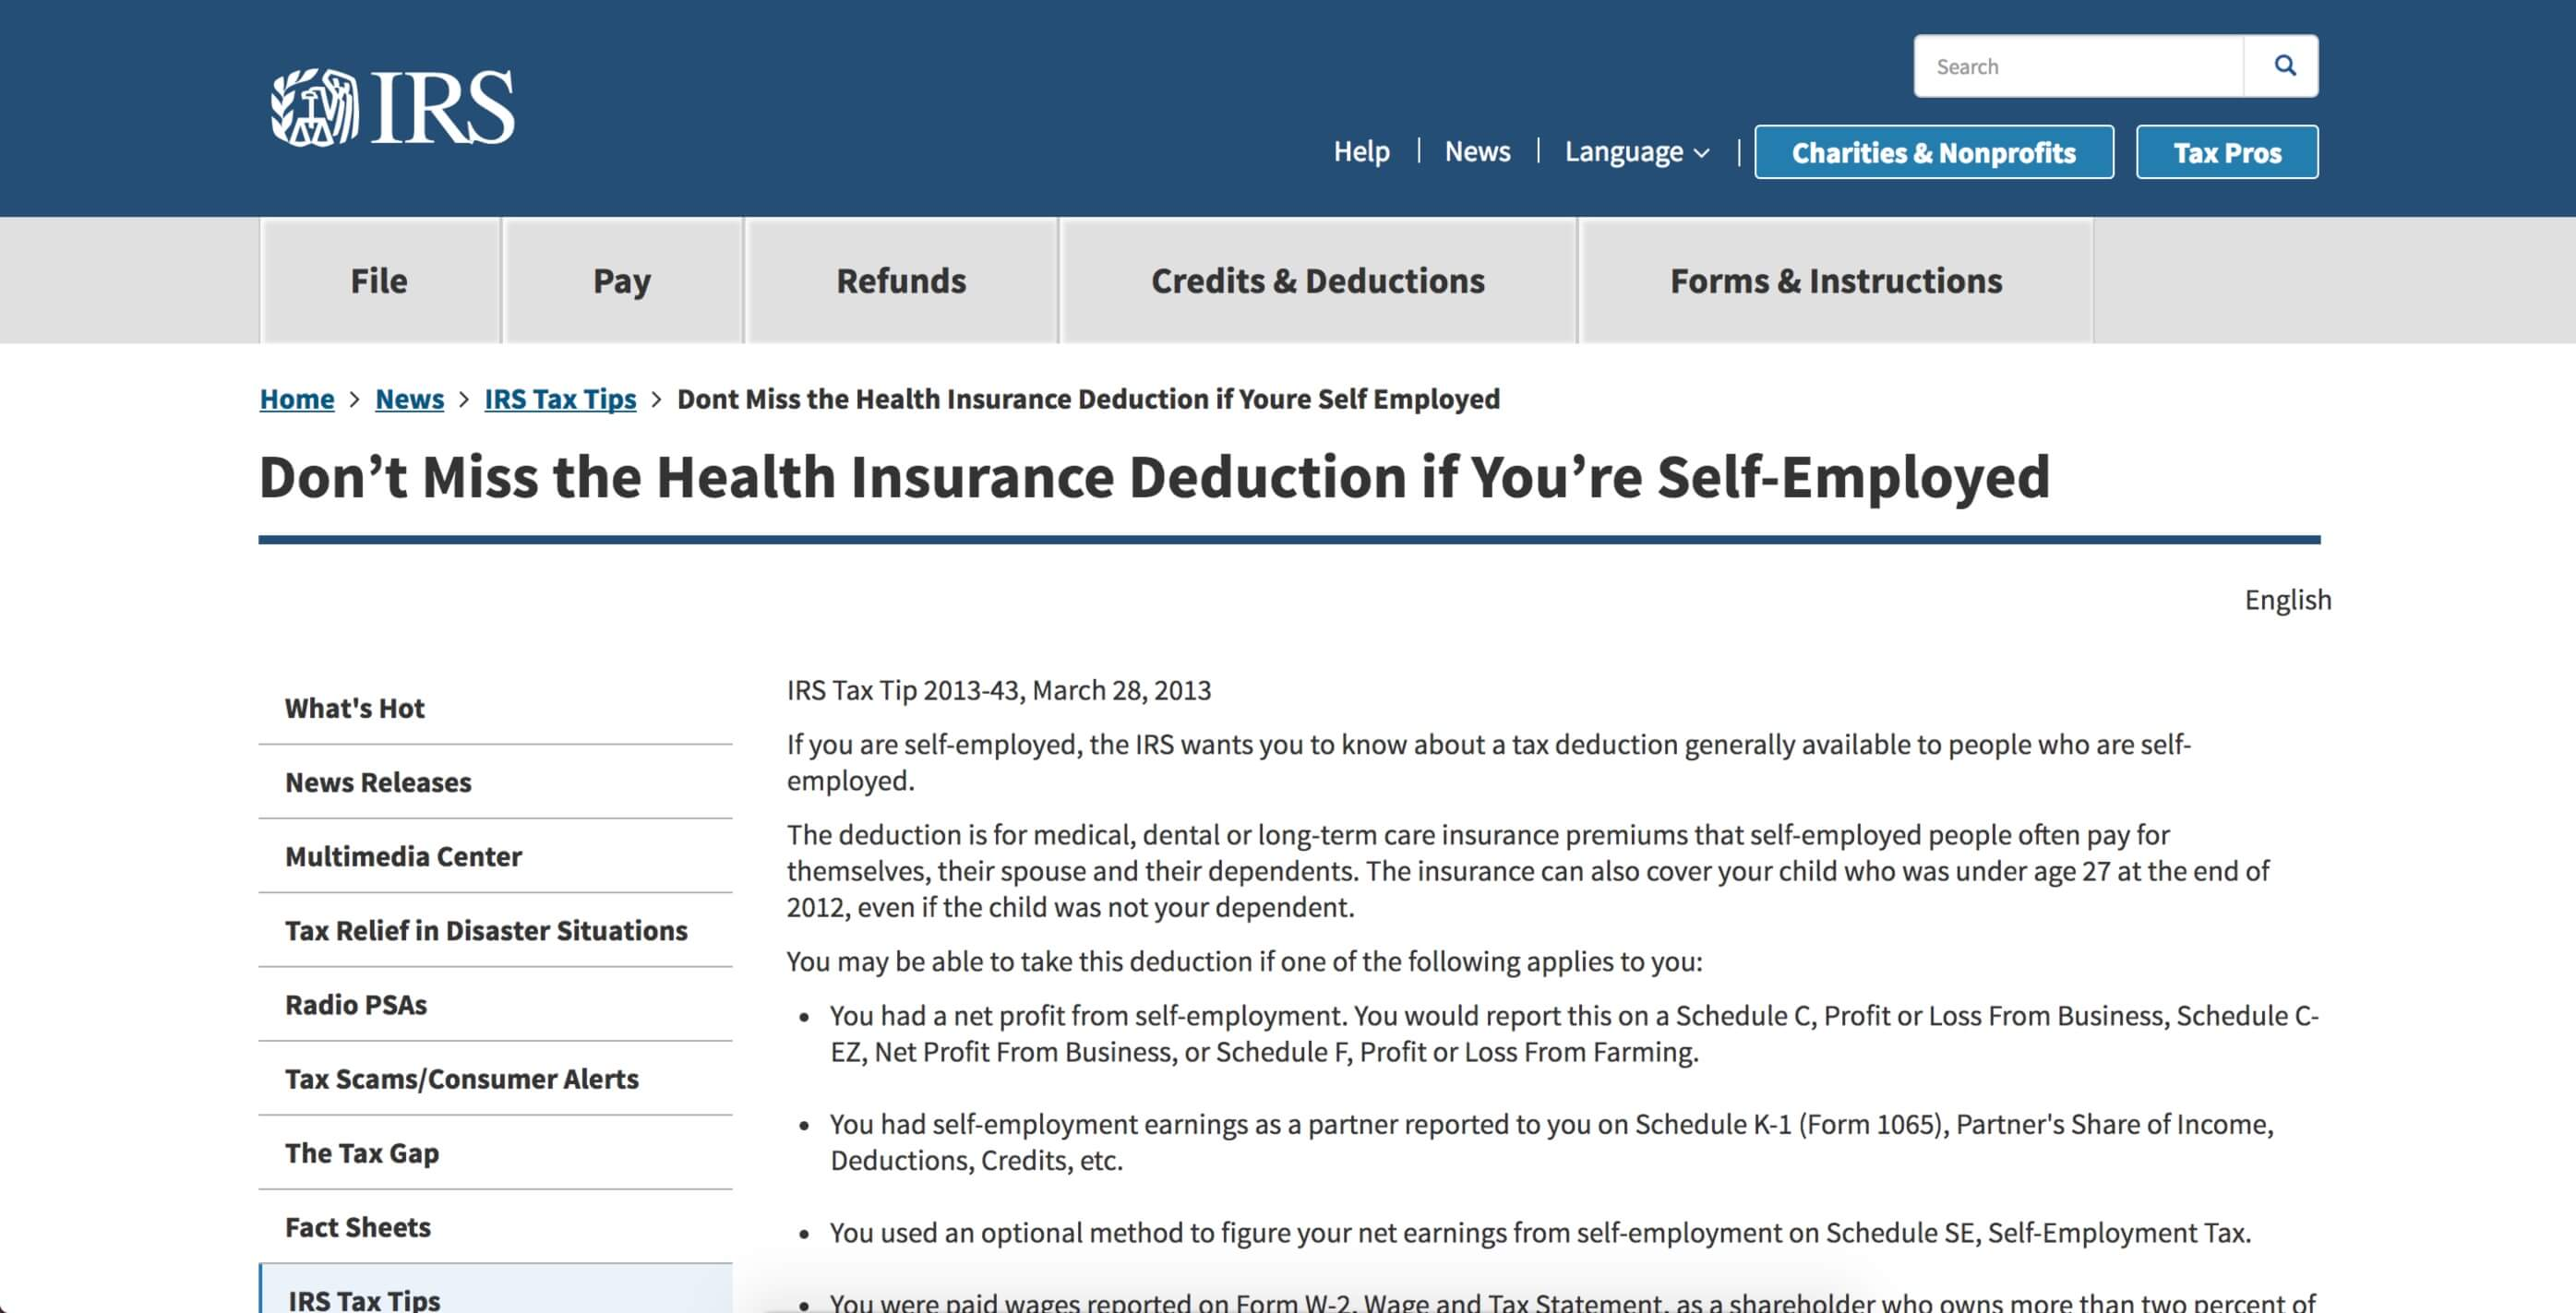 IRS tax tip for health insurance deduction